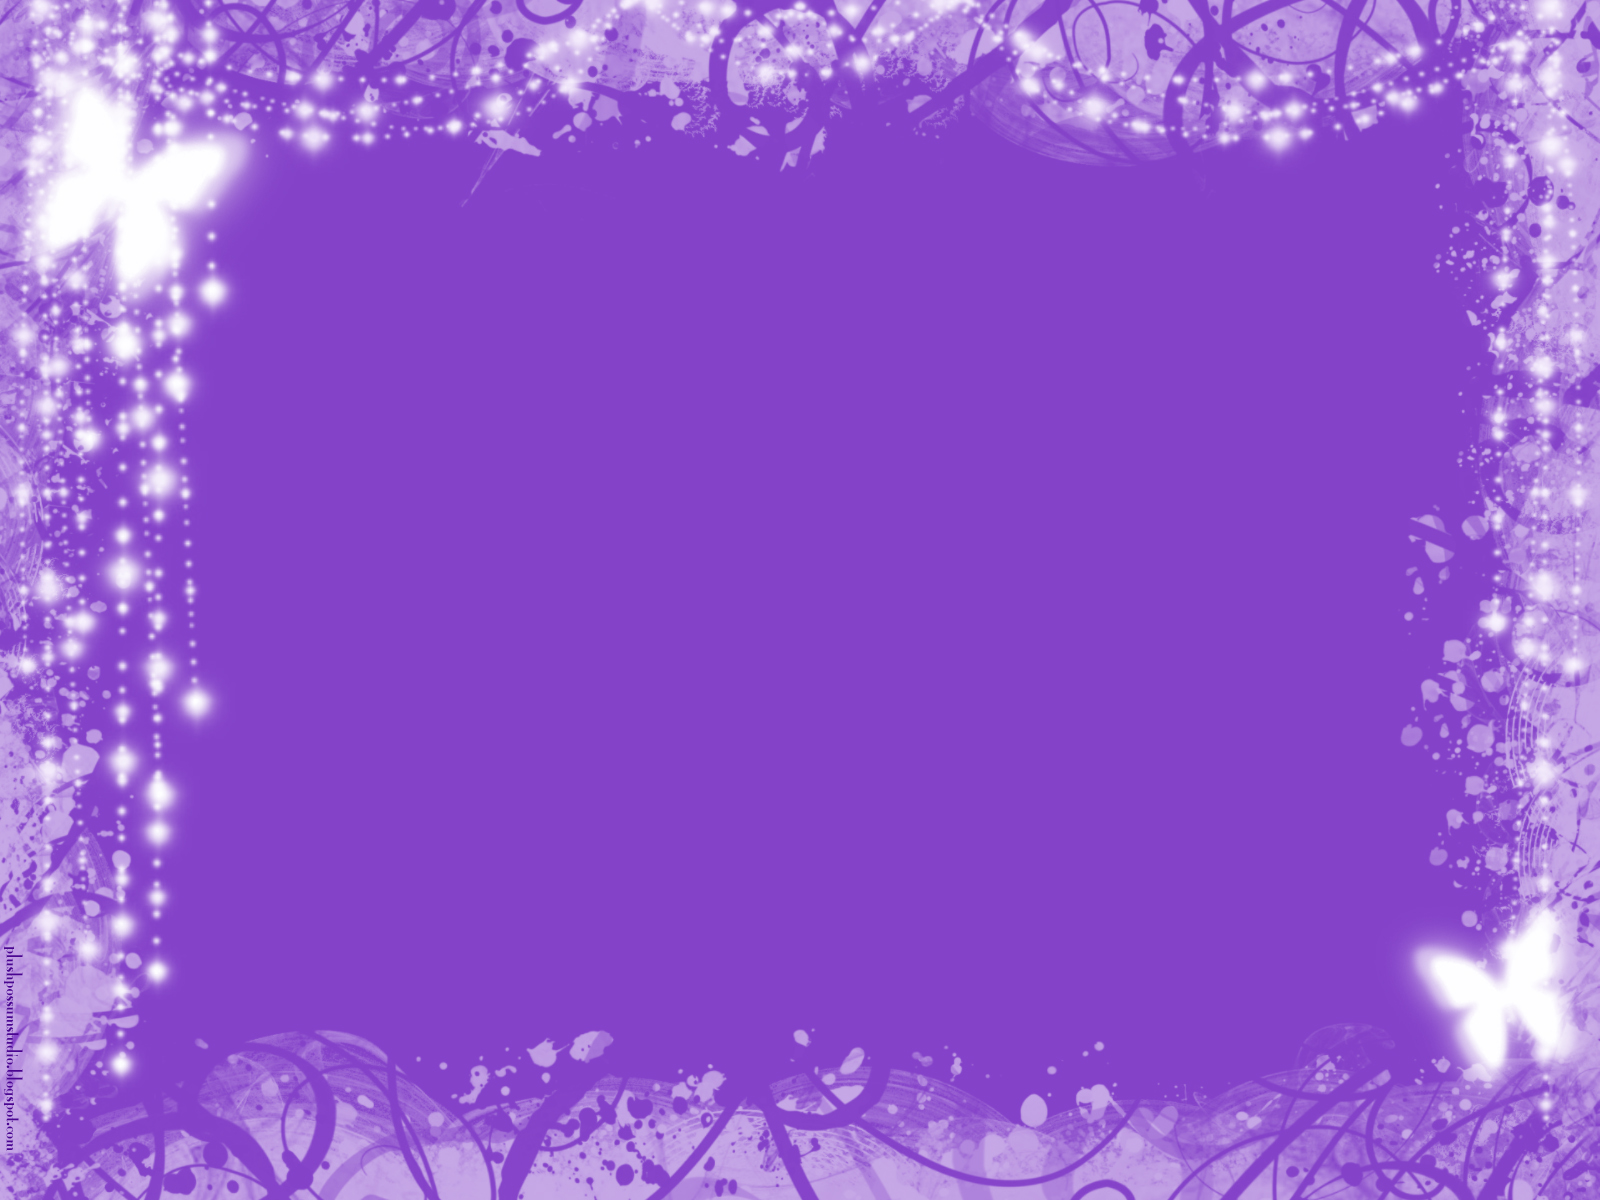 Plush possum studio our first free twitter backgrounds - Is purple a christmas color ...